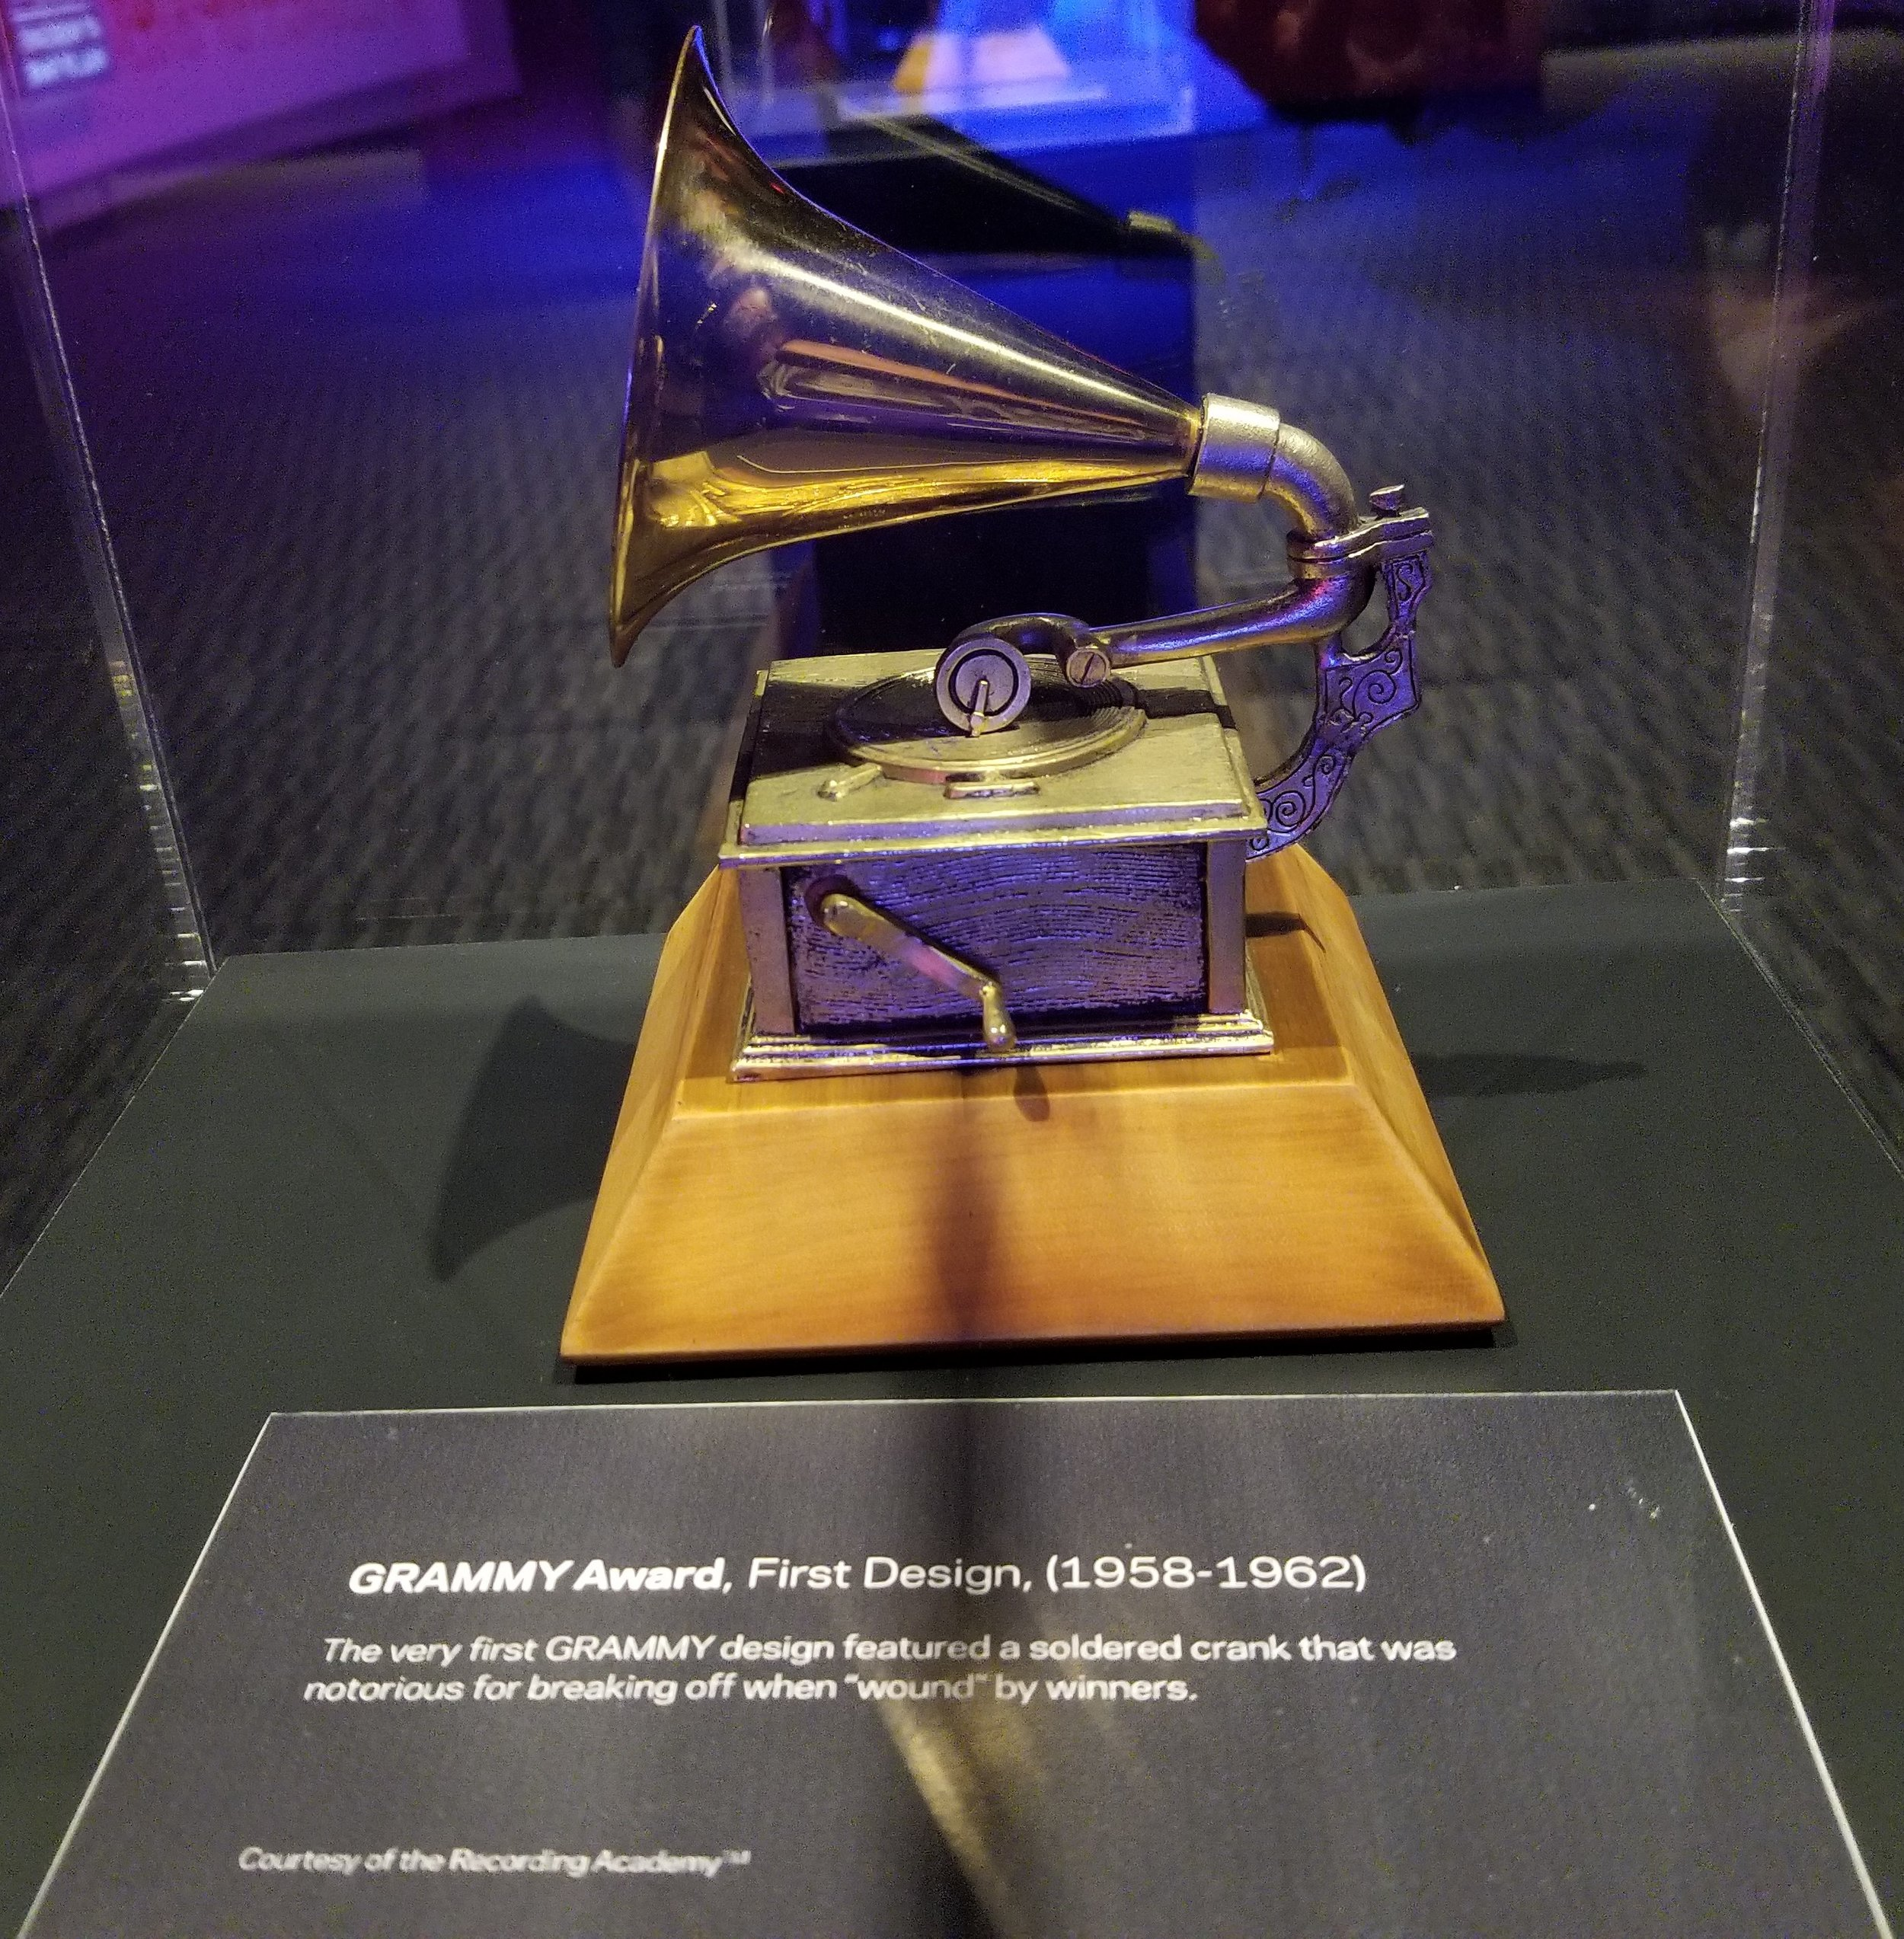 This was the very first GRAMMY Award design from 1958-1962. I enjoyed this exhibit as it showed the different designs over the years